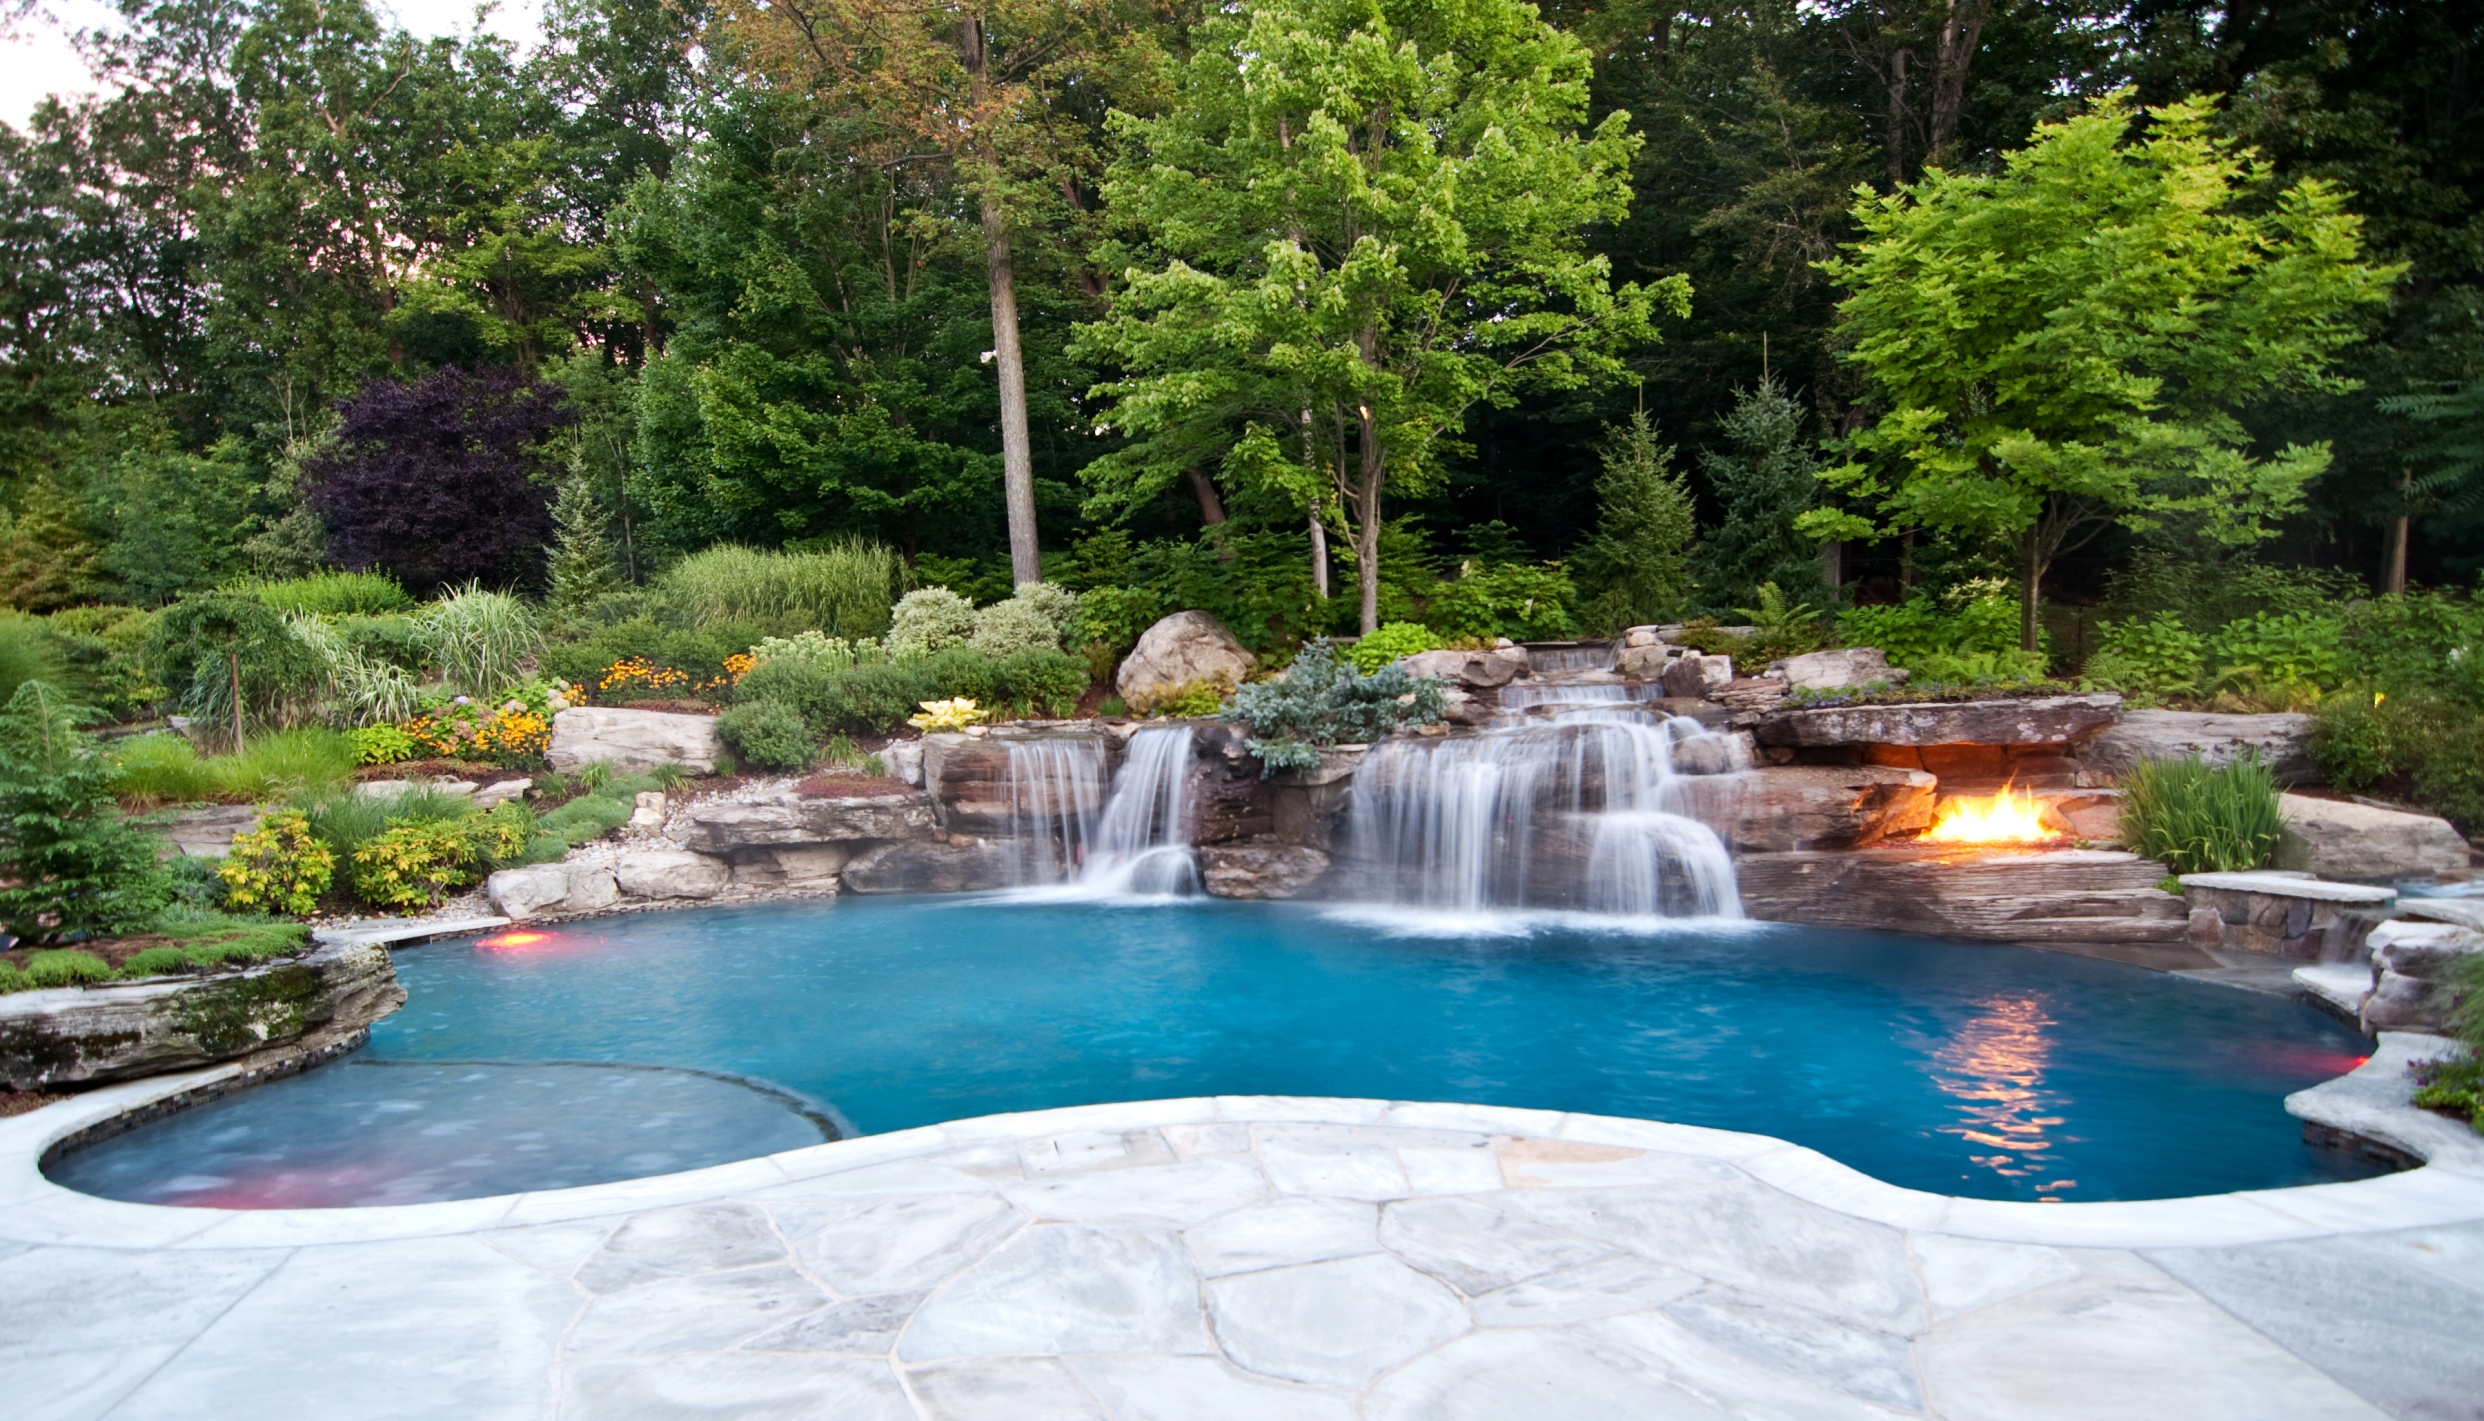 Backyard designs with pool and outdoor kitchen - large and ...